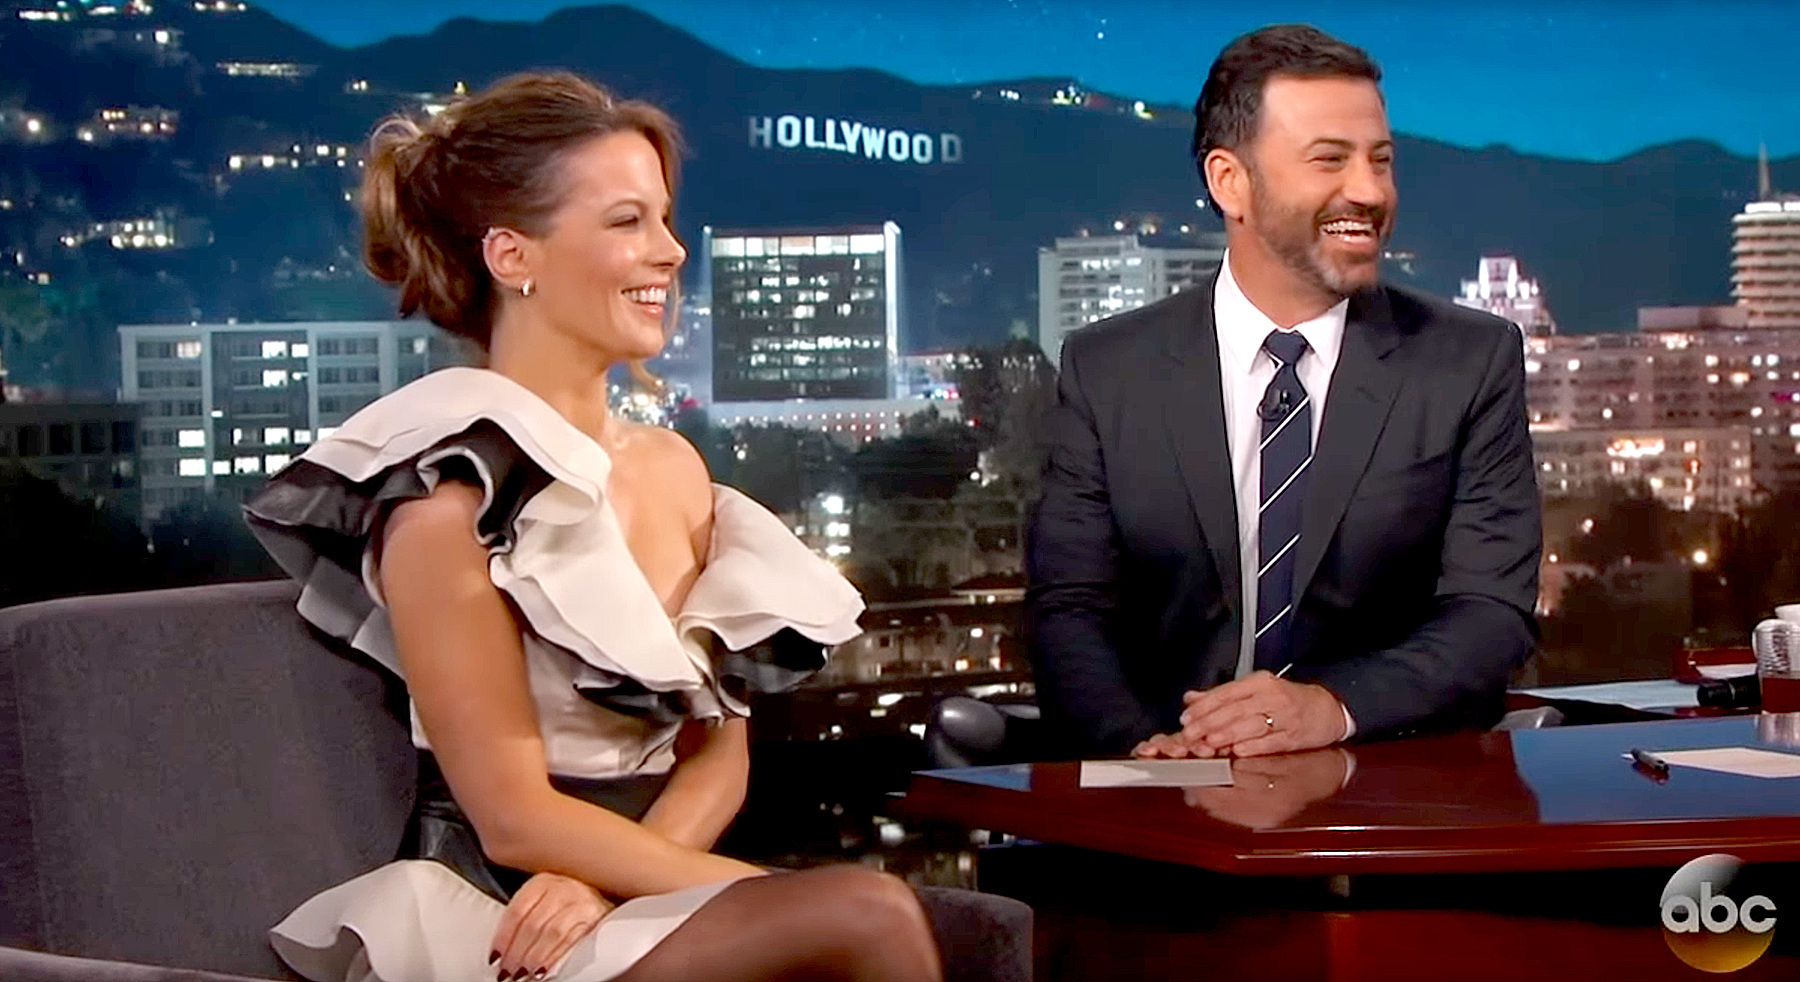 Kate Beckinsale Says Her Daughter Has a Crush on Jimmy Kimmel